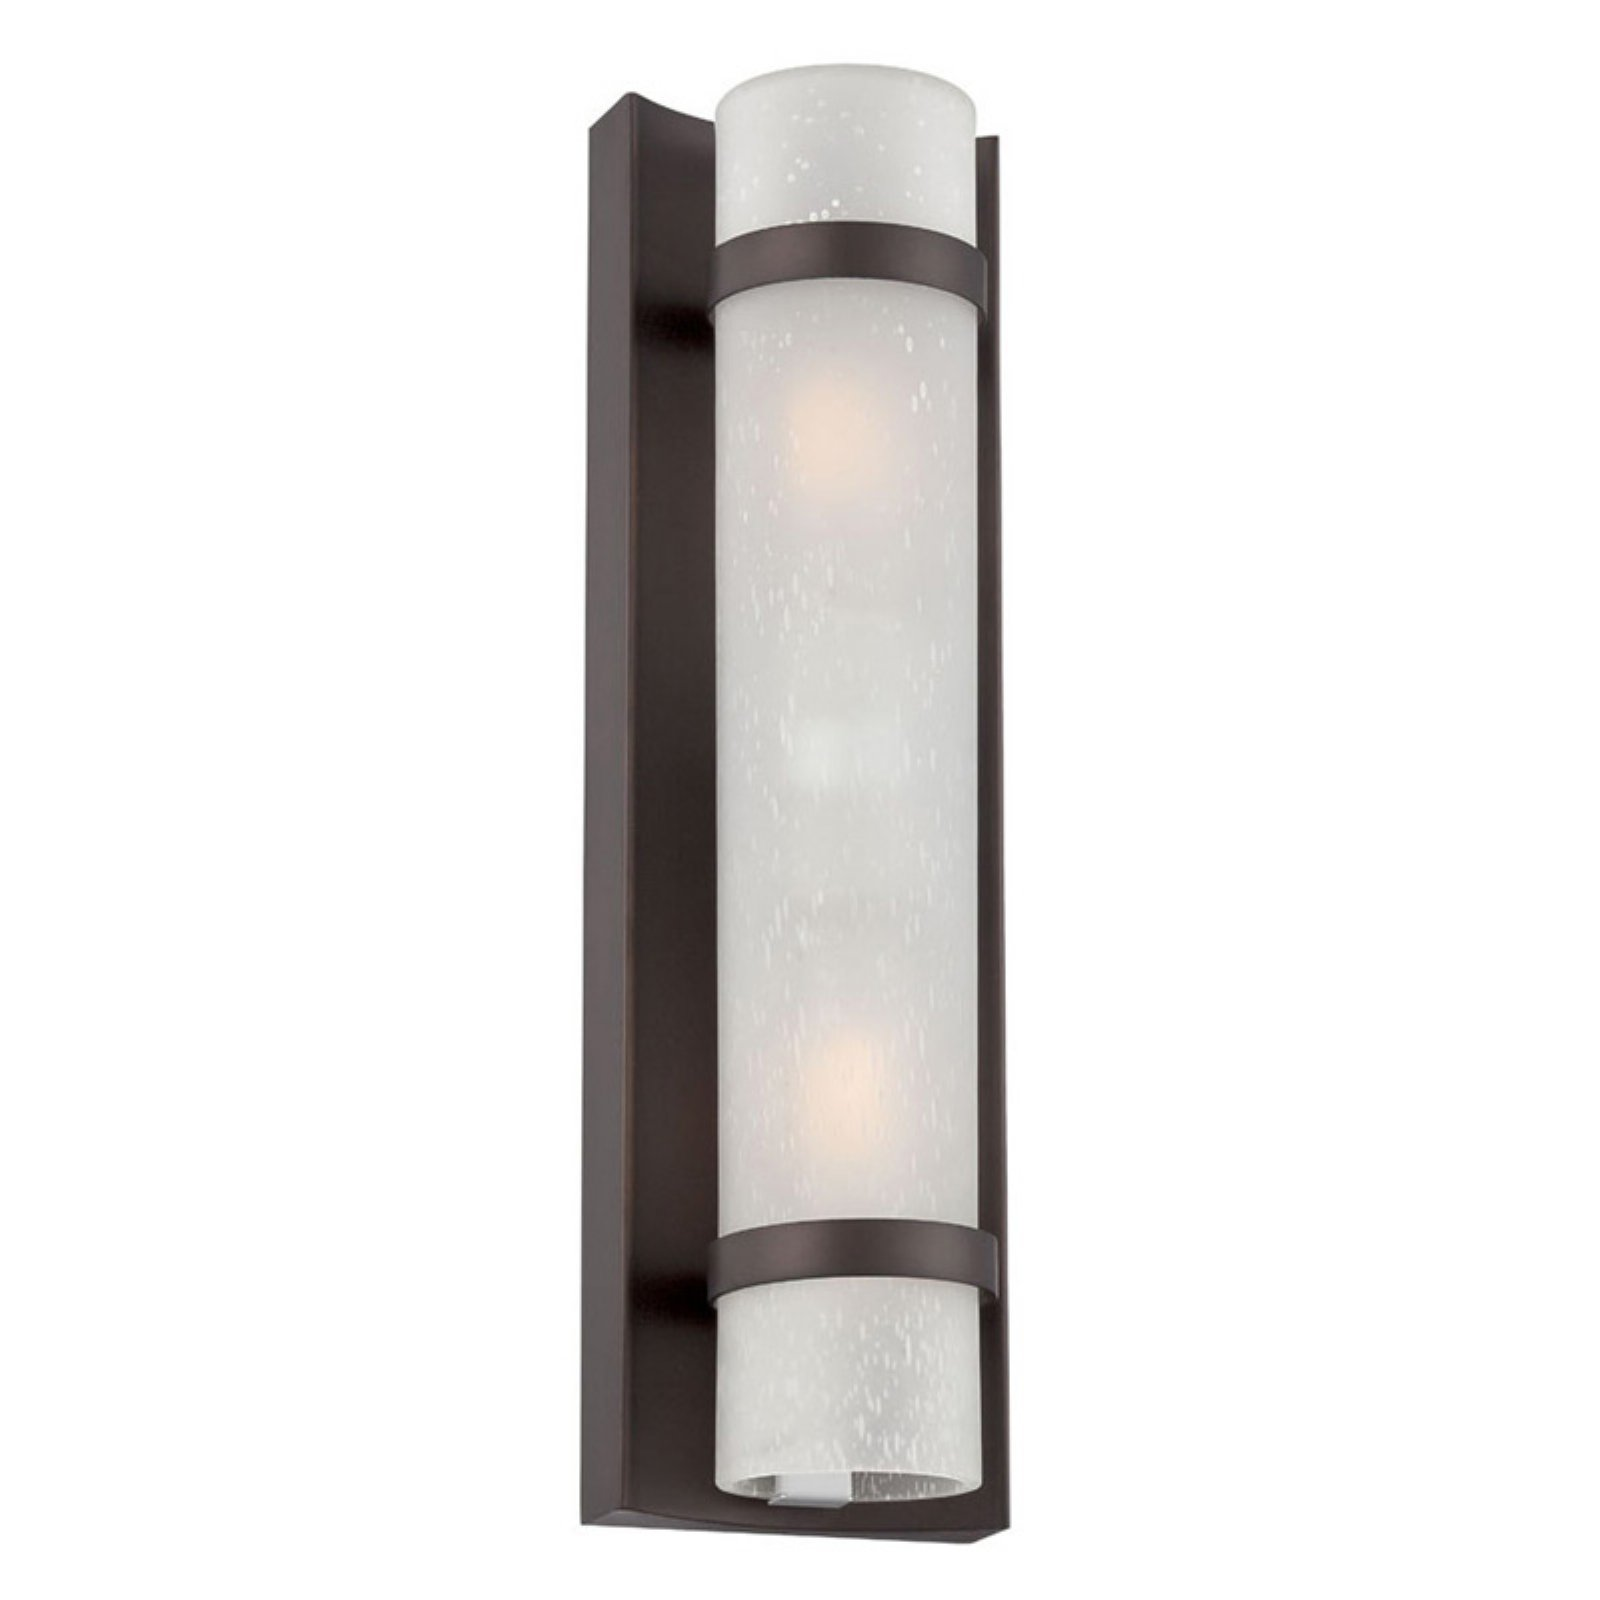 Image of Acclaim Lighting Apollo 2 Light Outdoor Wall Mount Light